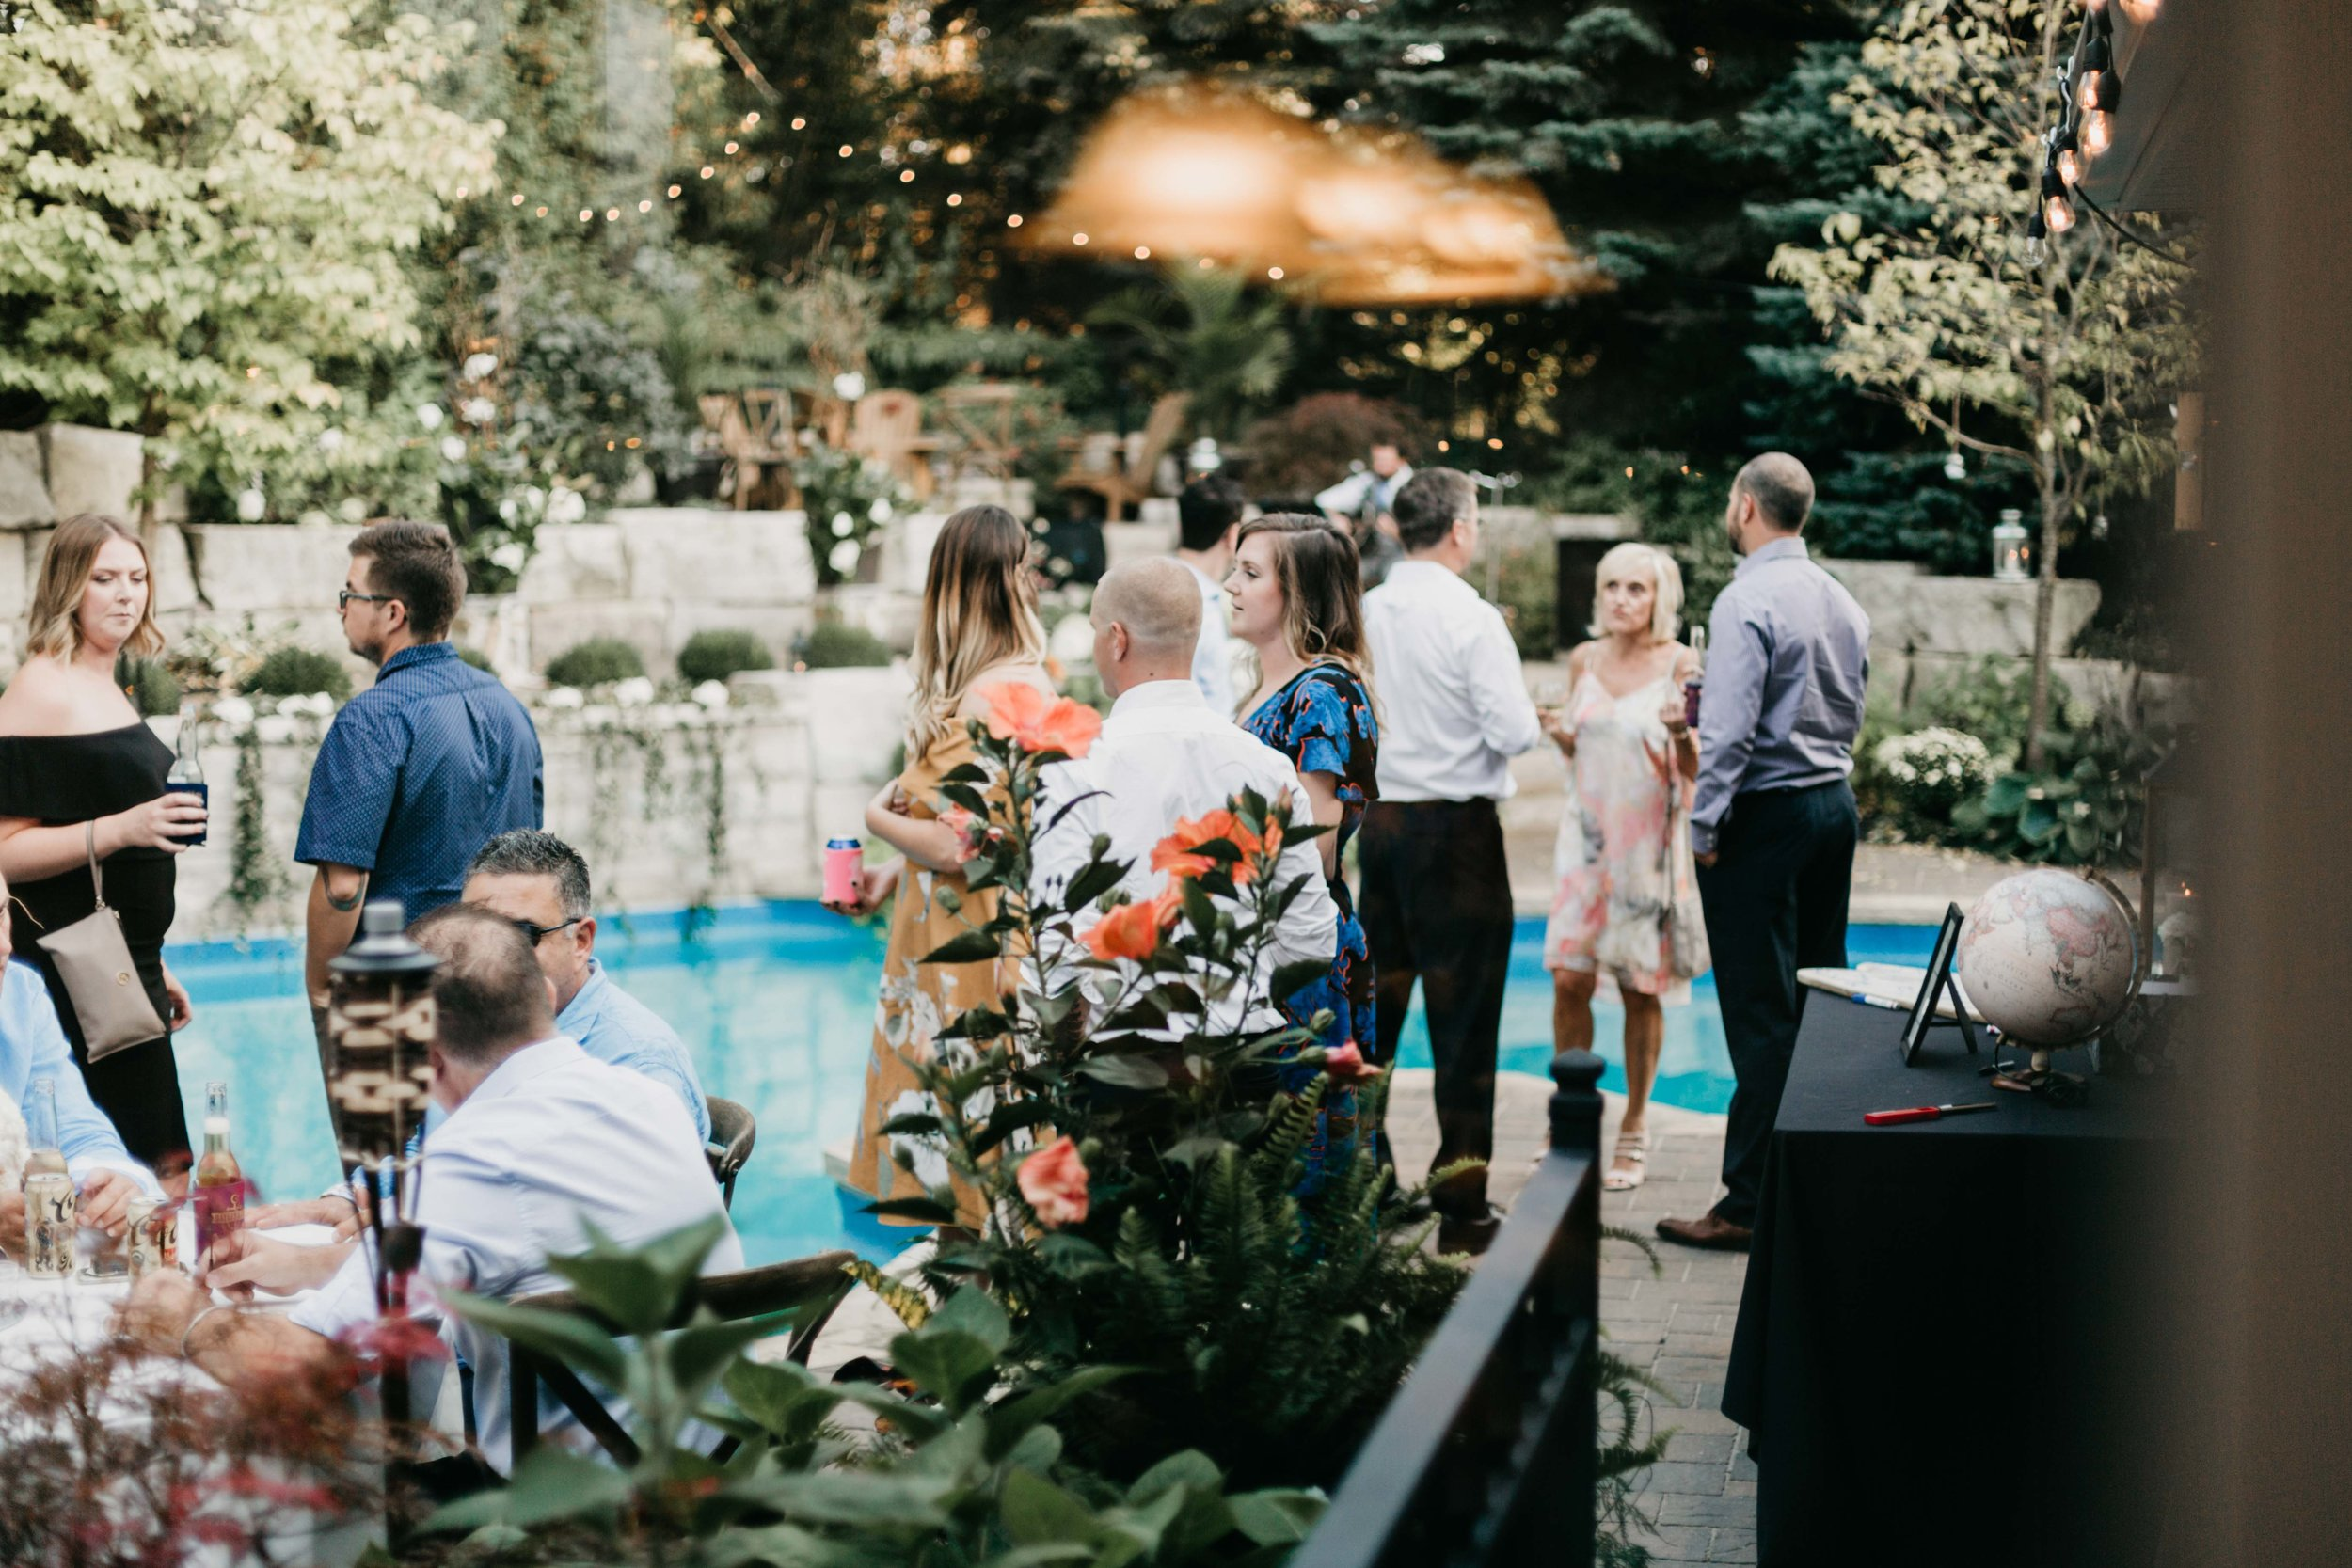 Intimate Outdoor Backyard Wedding Ancaster Ontario-137.jpg